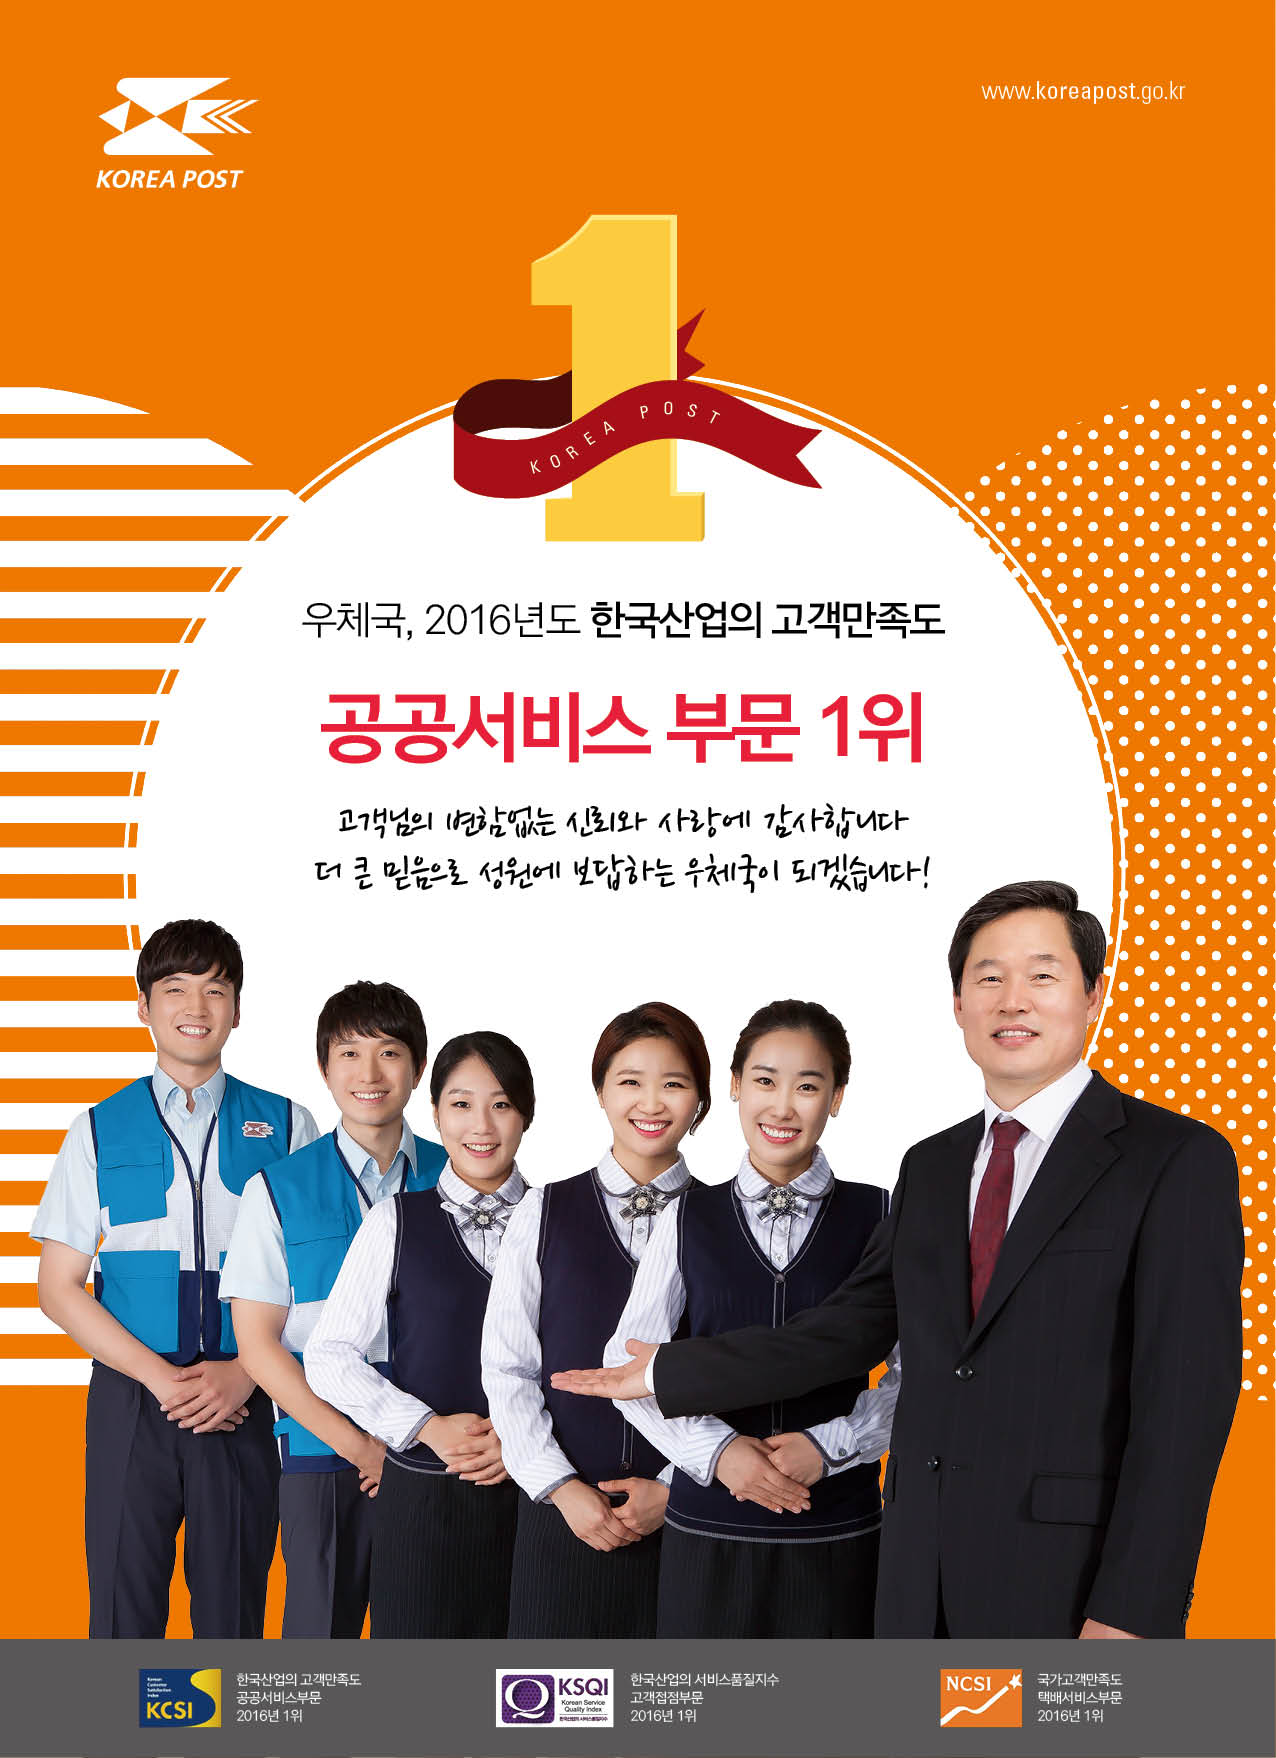 Korea Post Provides 'Customers in Mind' Delivery Services